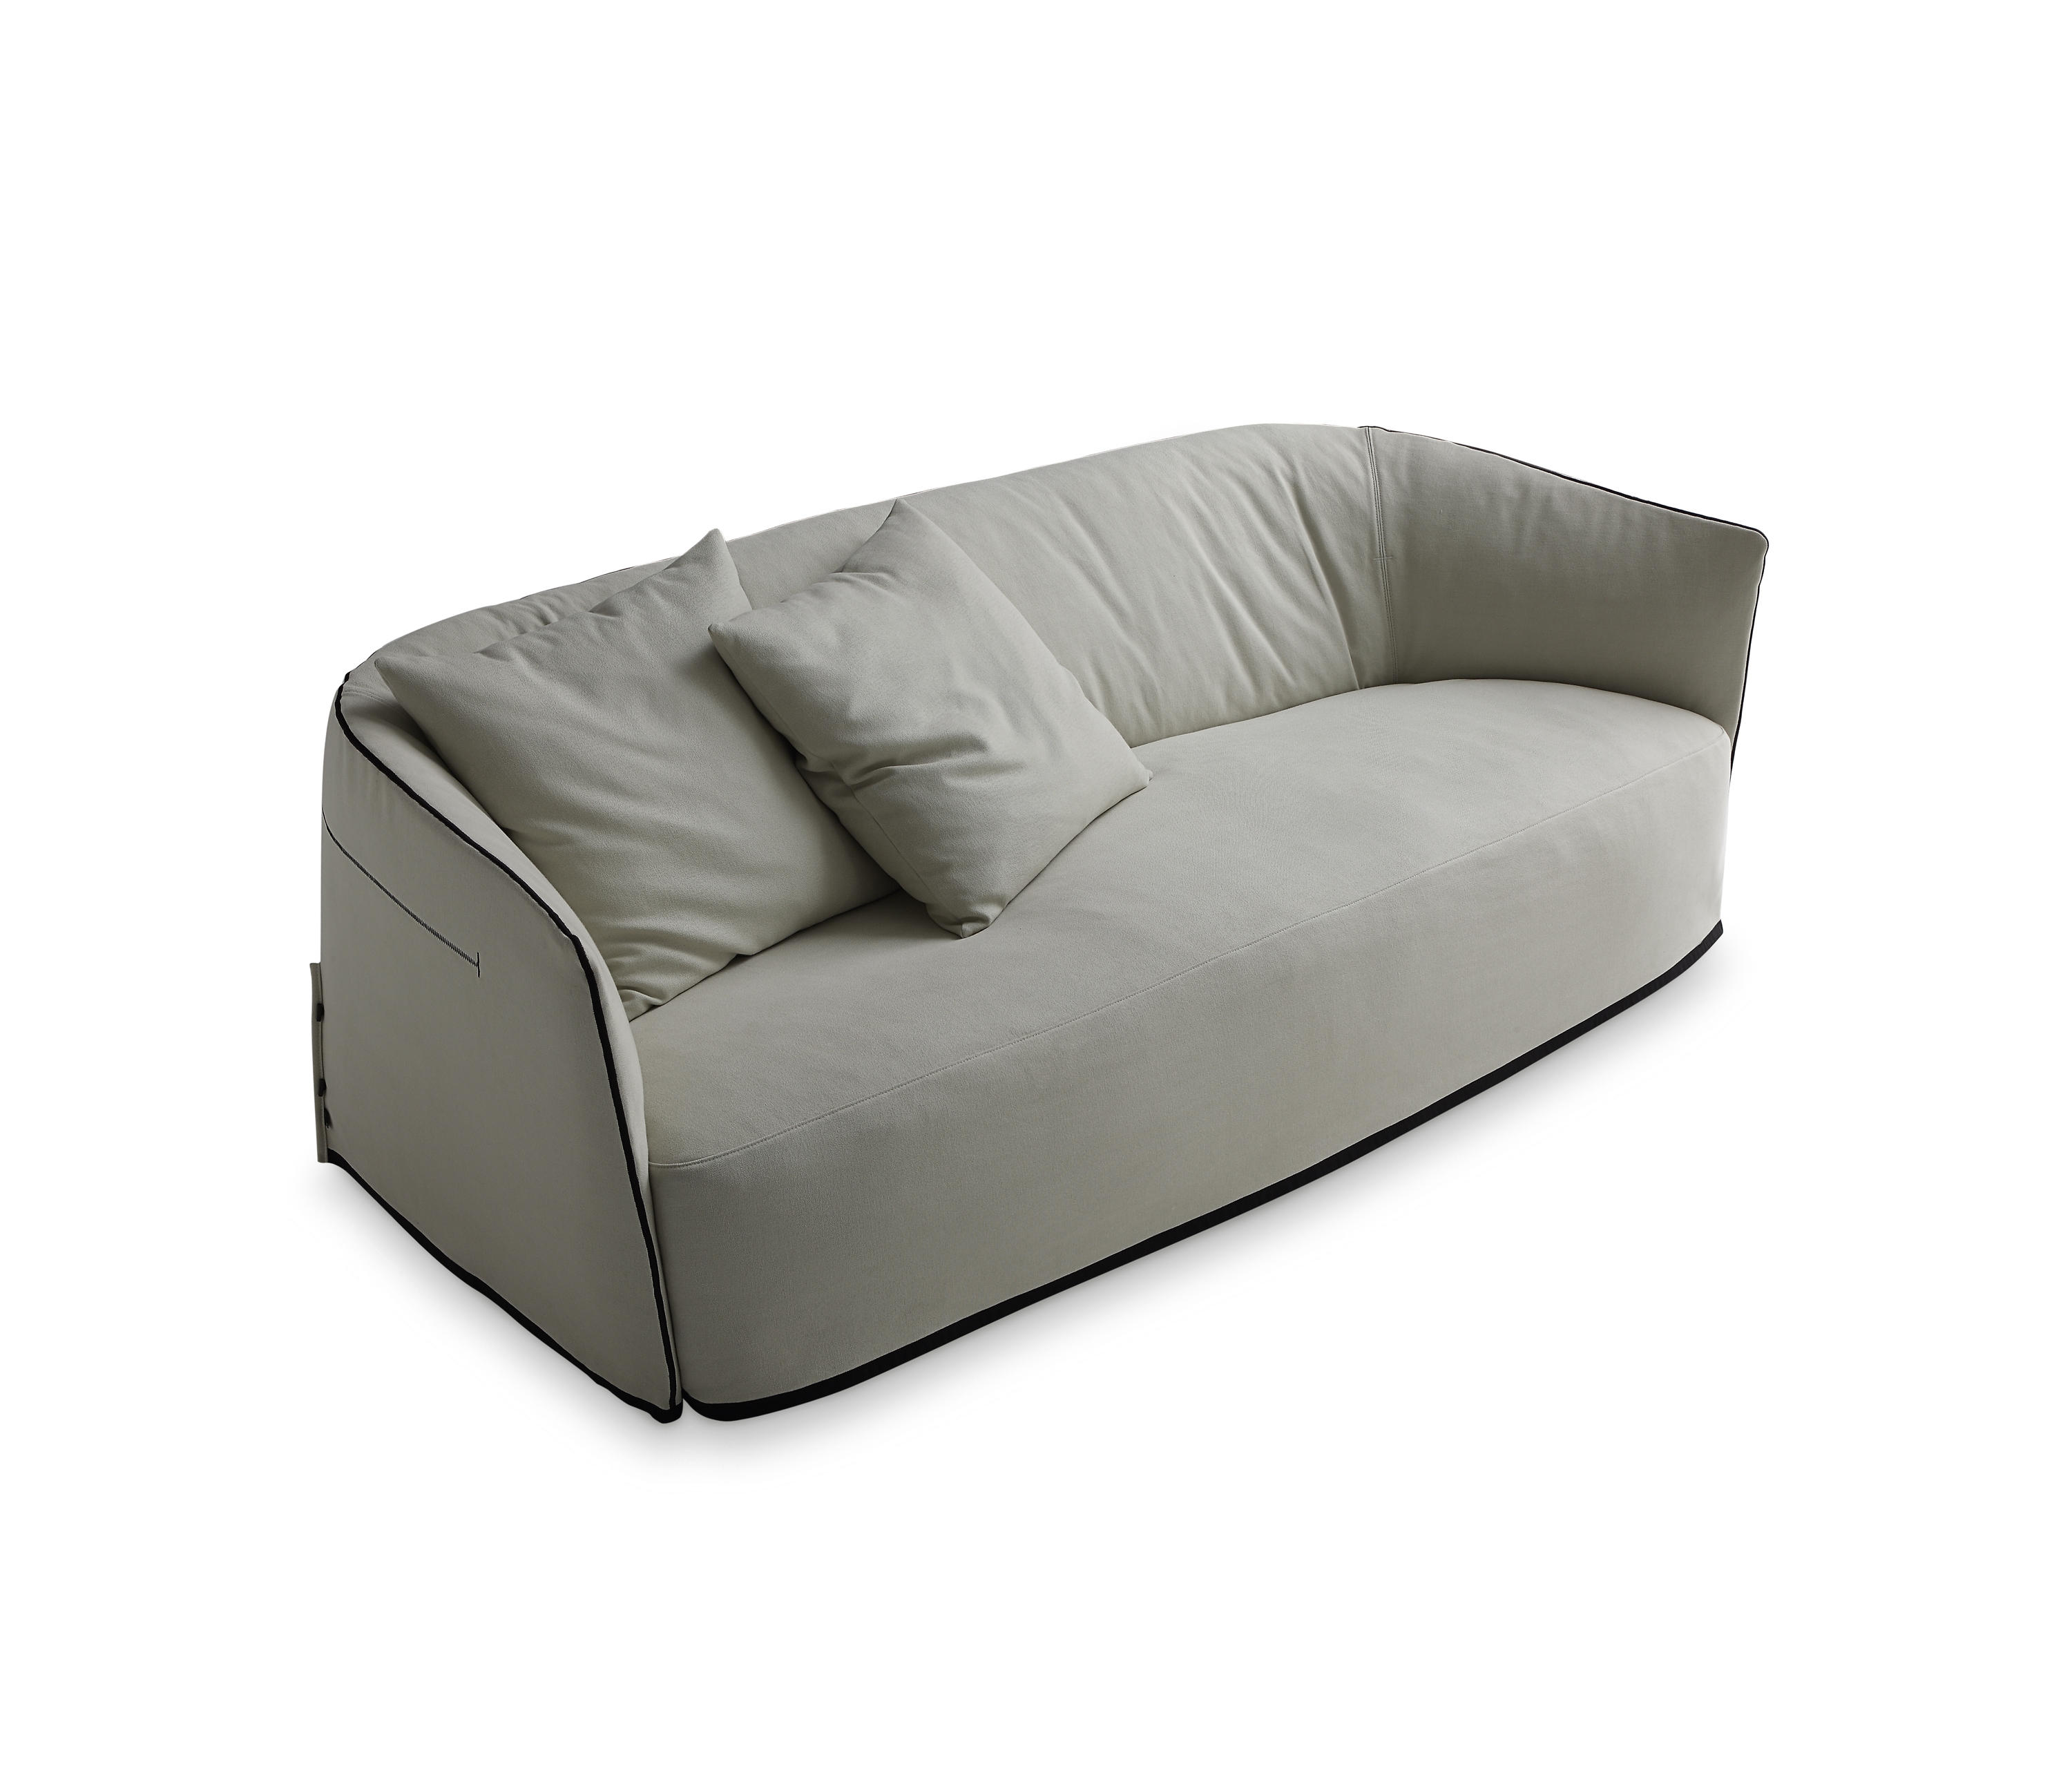 Santa Monica Sofa By Poliform Sofas